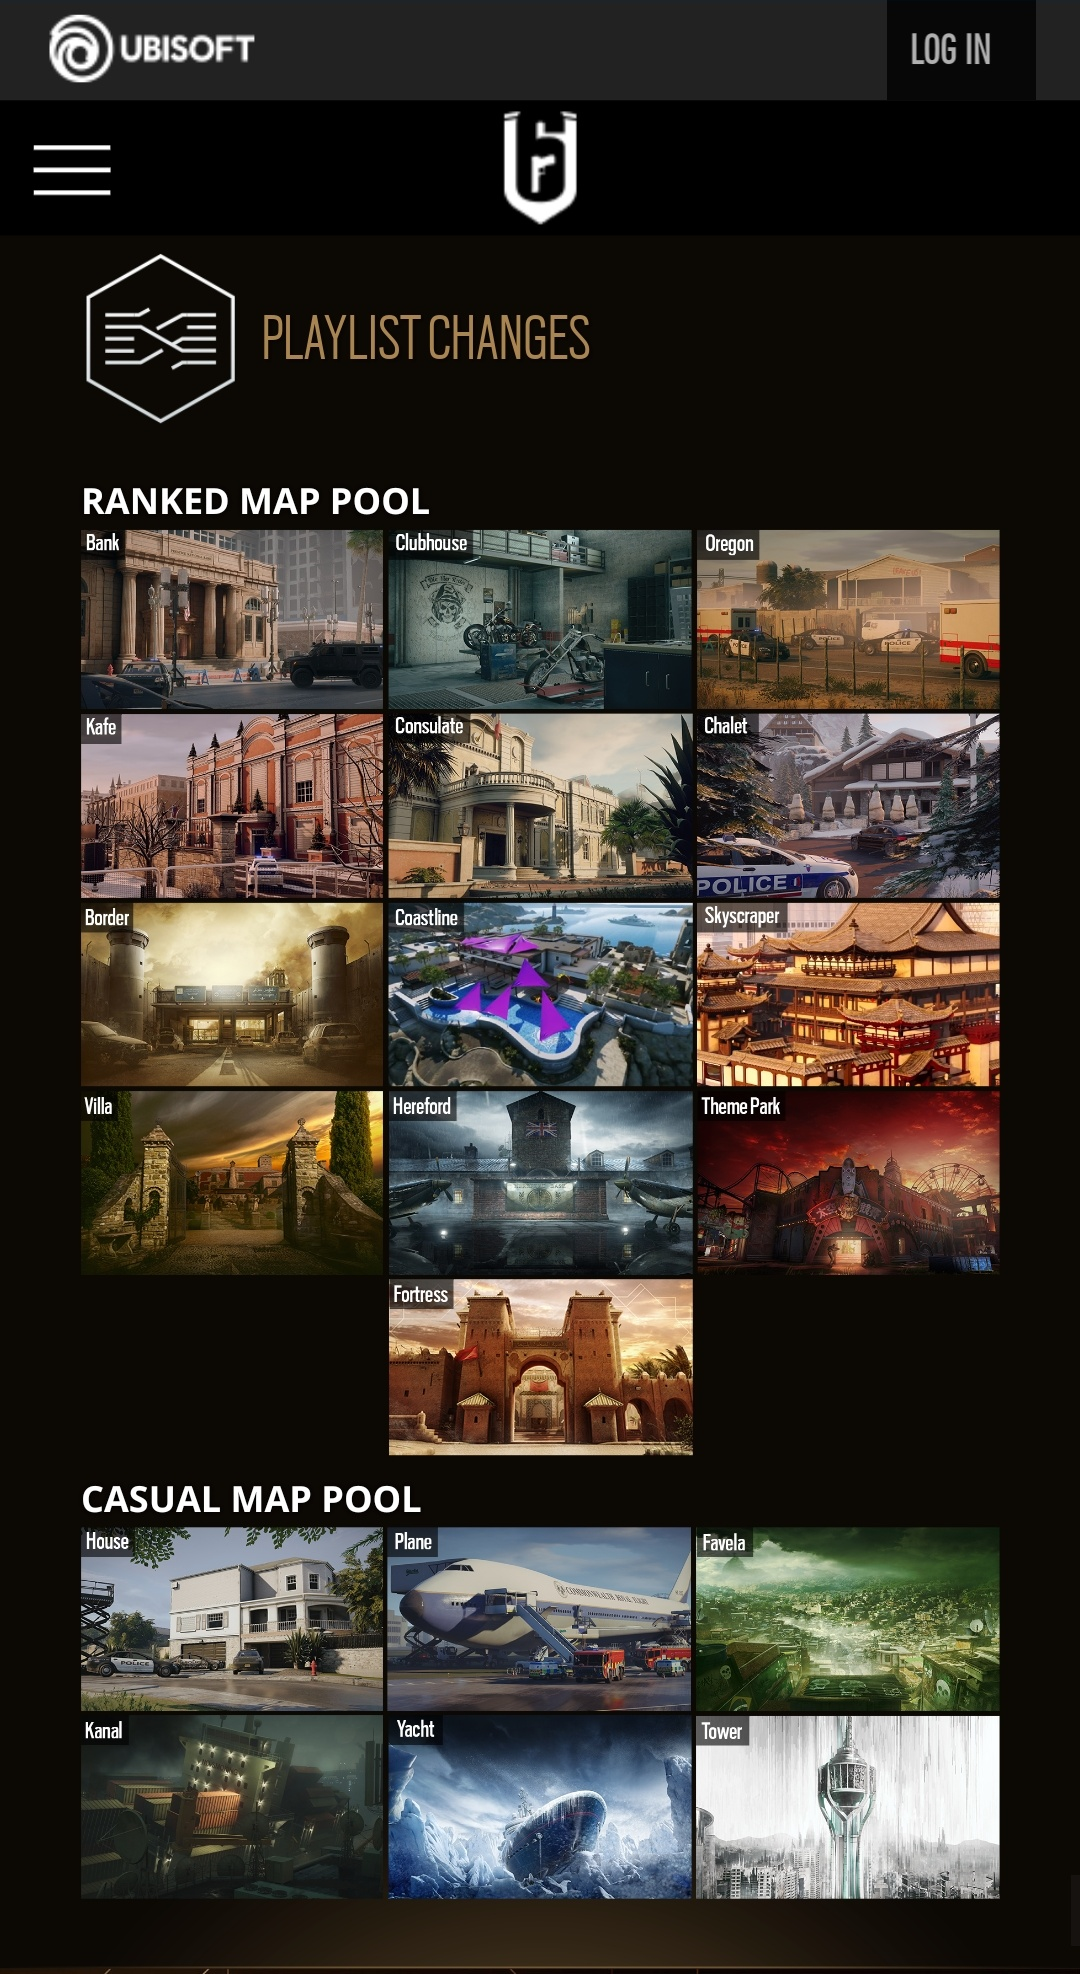 Rainbow Six Siege Maps Layout : rainbow, siege, layout, World, Library, Complete, Resources:, Ranked